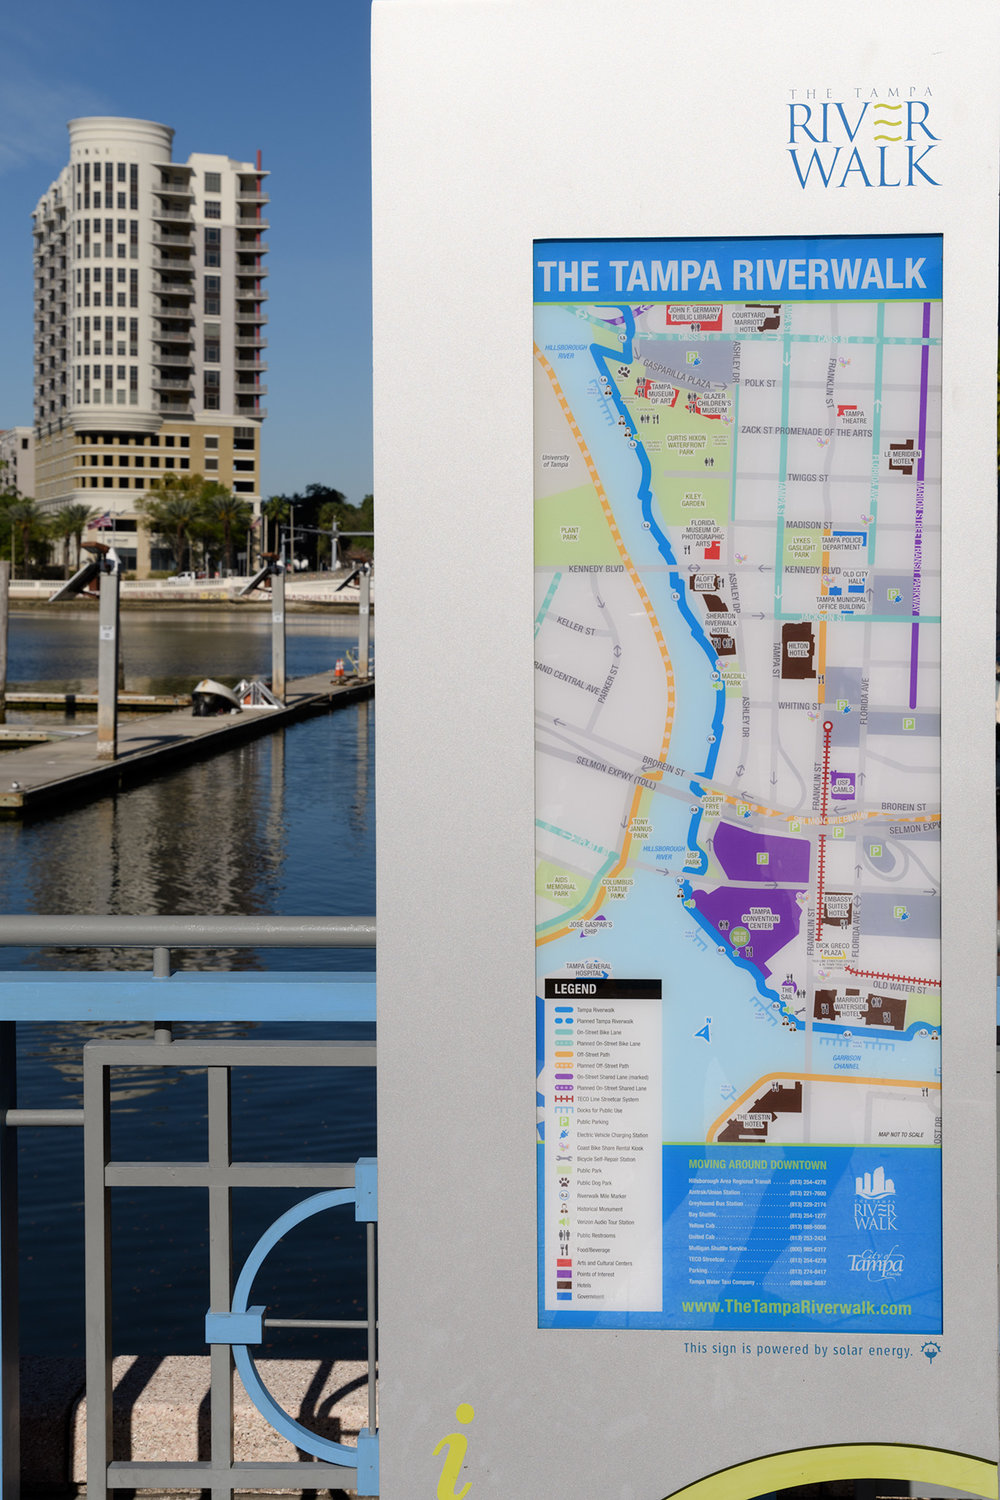 20170311 - Tampa Riverwalk - 020.jpg